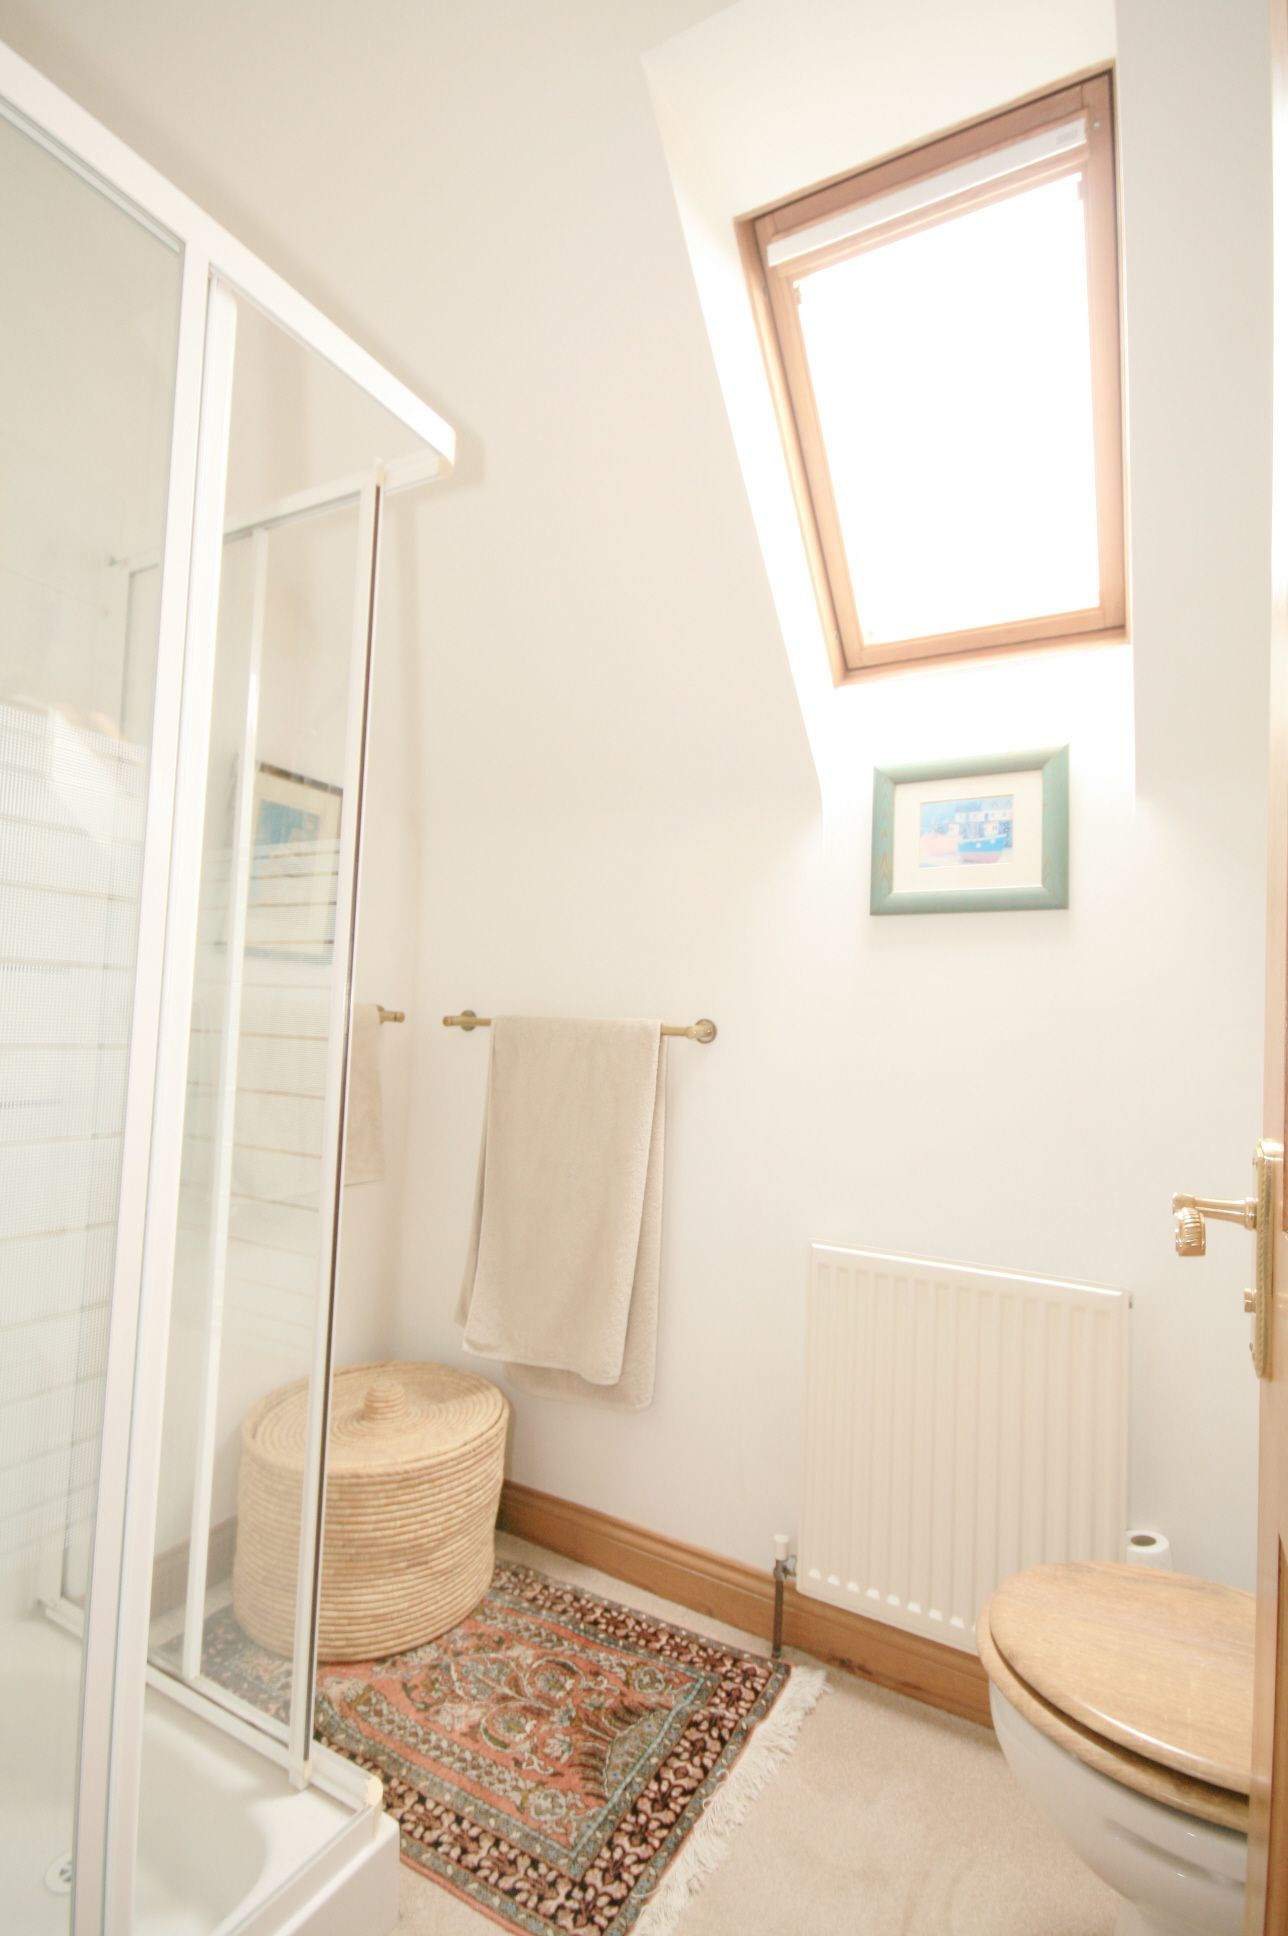 3 Bedroom Detached House For Sale - Photograph 12